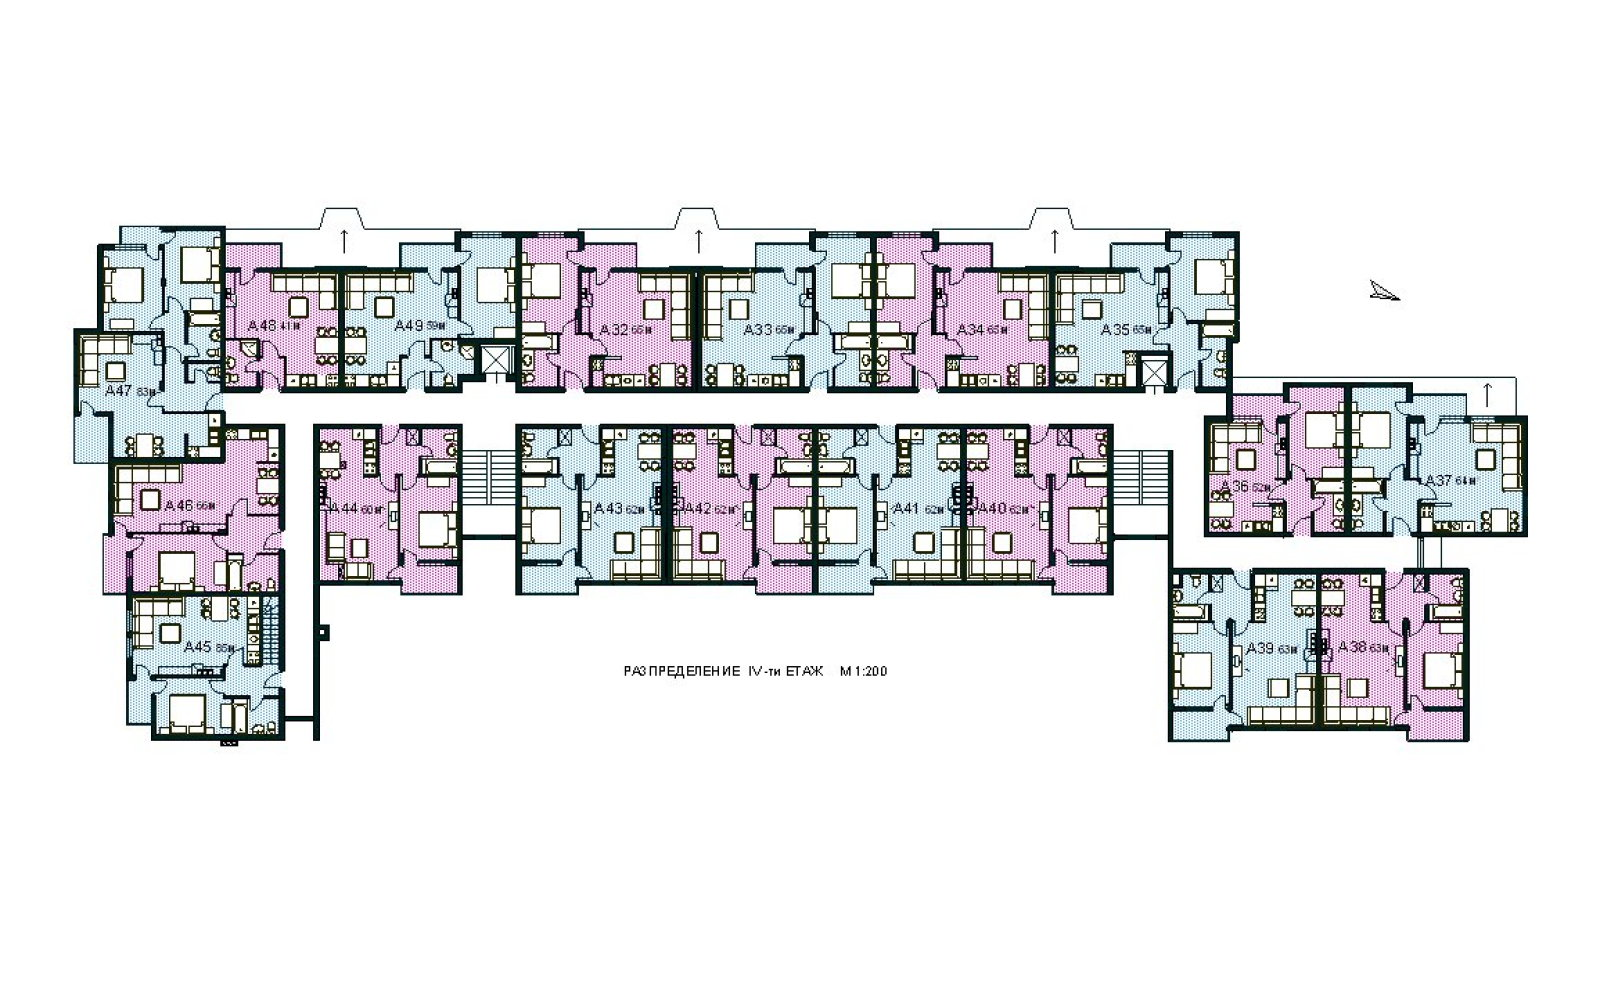 Apartment complex floor plans find house plans for Find house plans